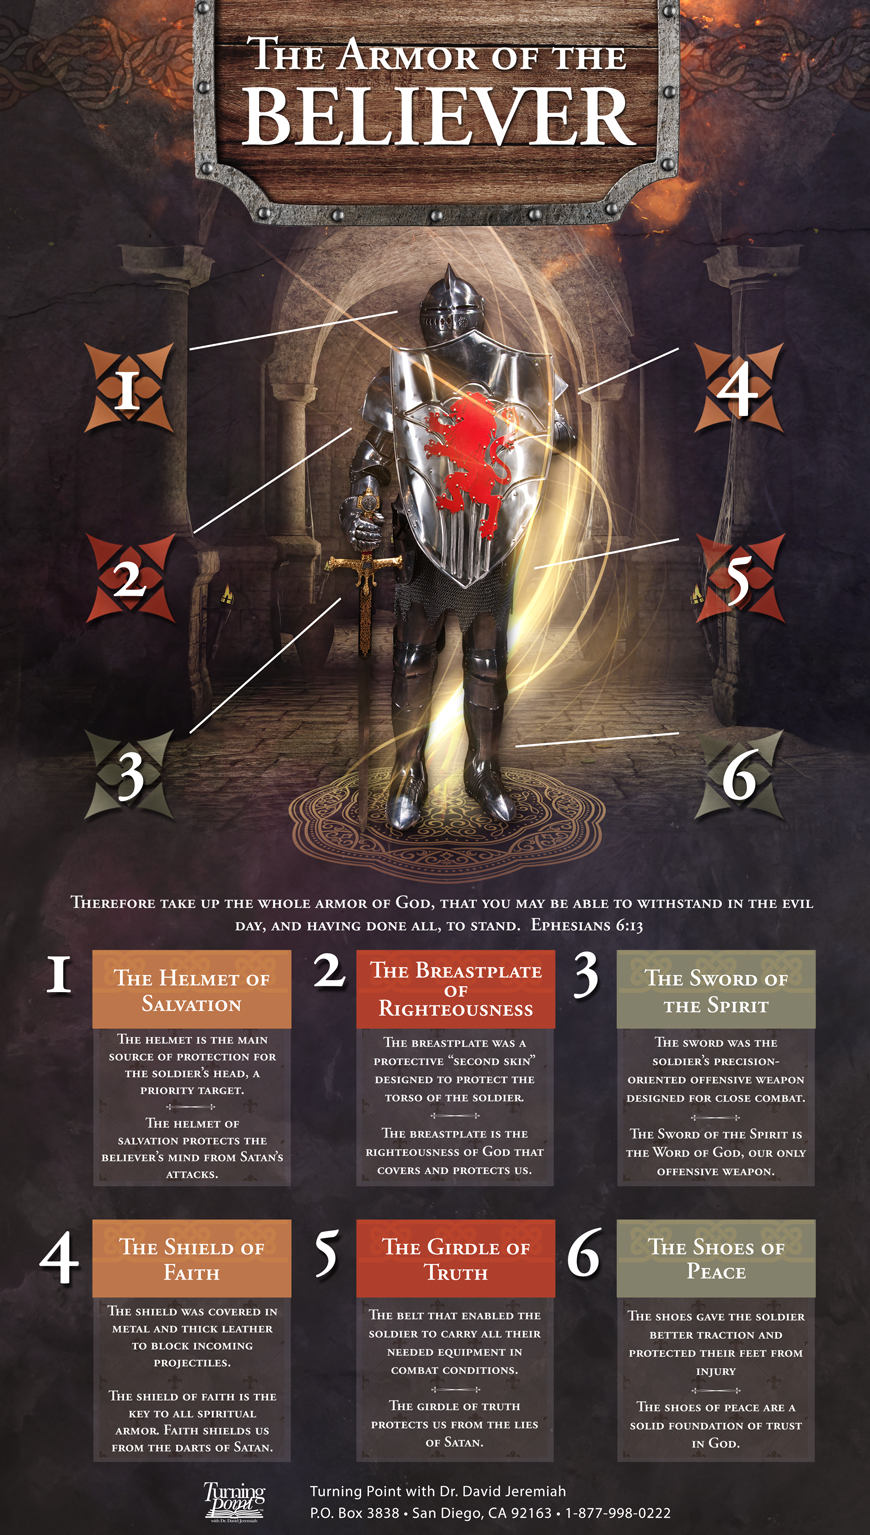 The Armor of God - Living in the Age of Signs